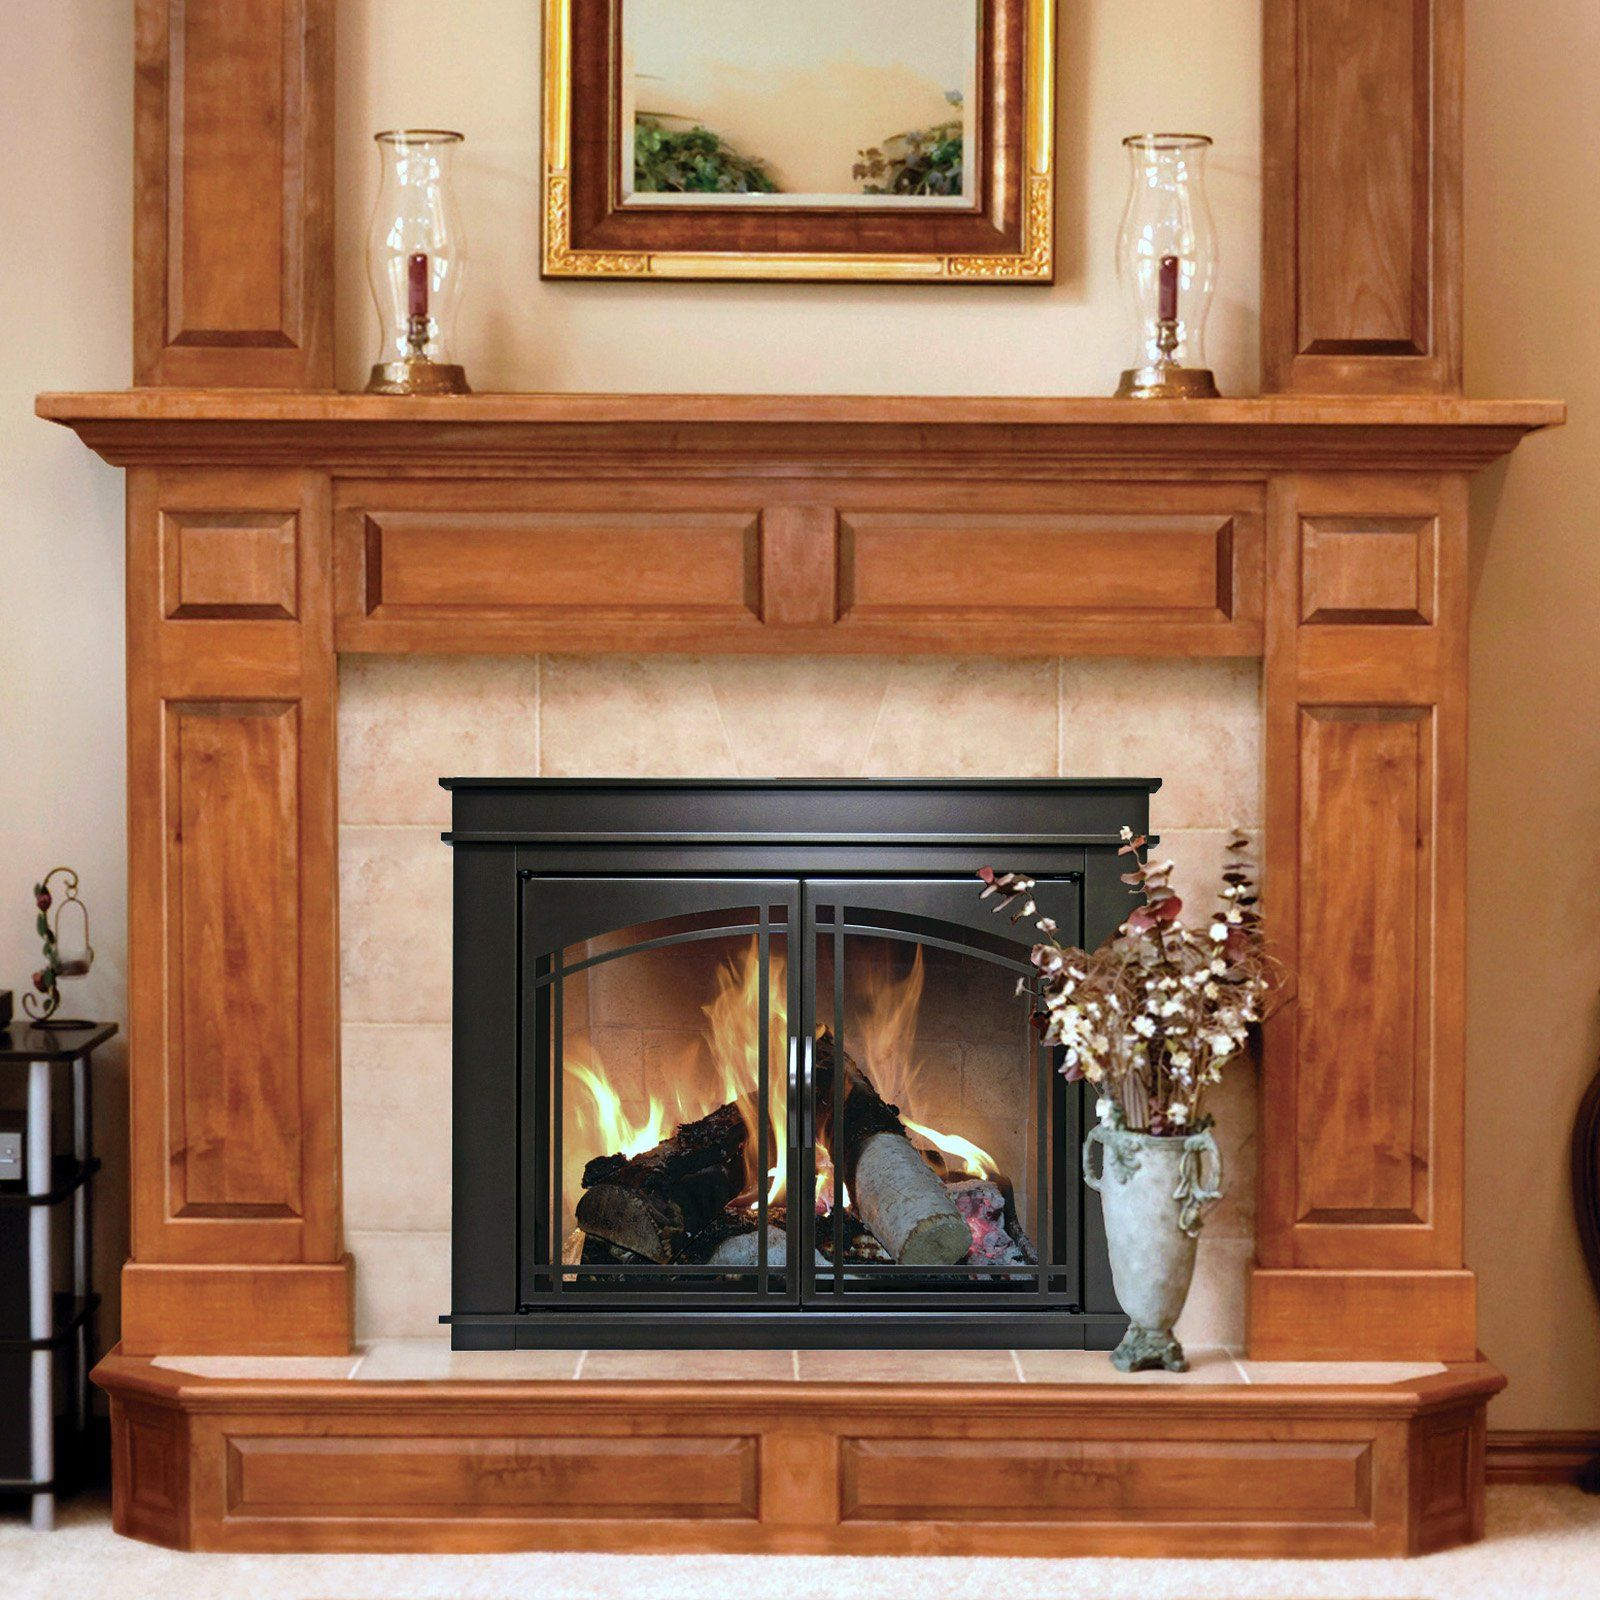 Glass Screen For Gas Fireplace Pleasant Hearth Fenwick Cabinet Fireplace Screen And Arch Prairie